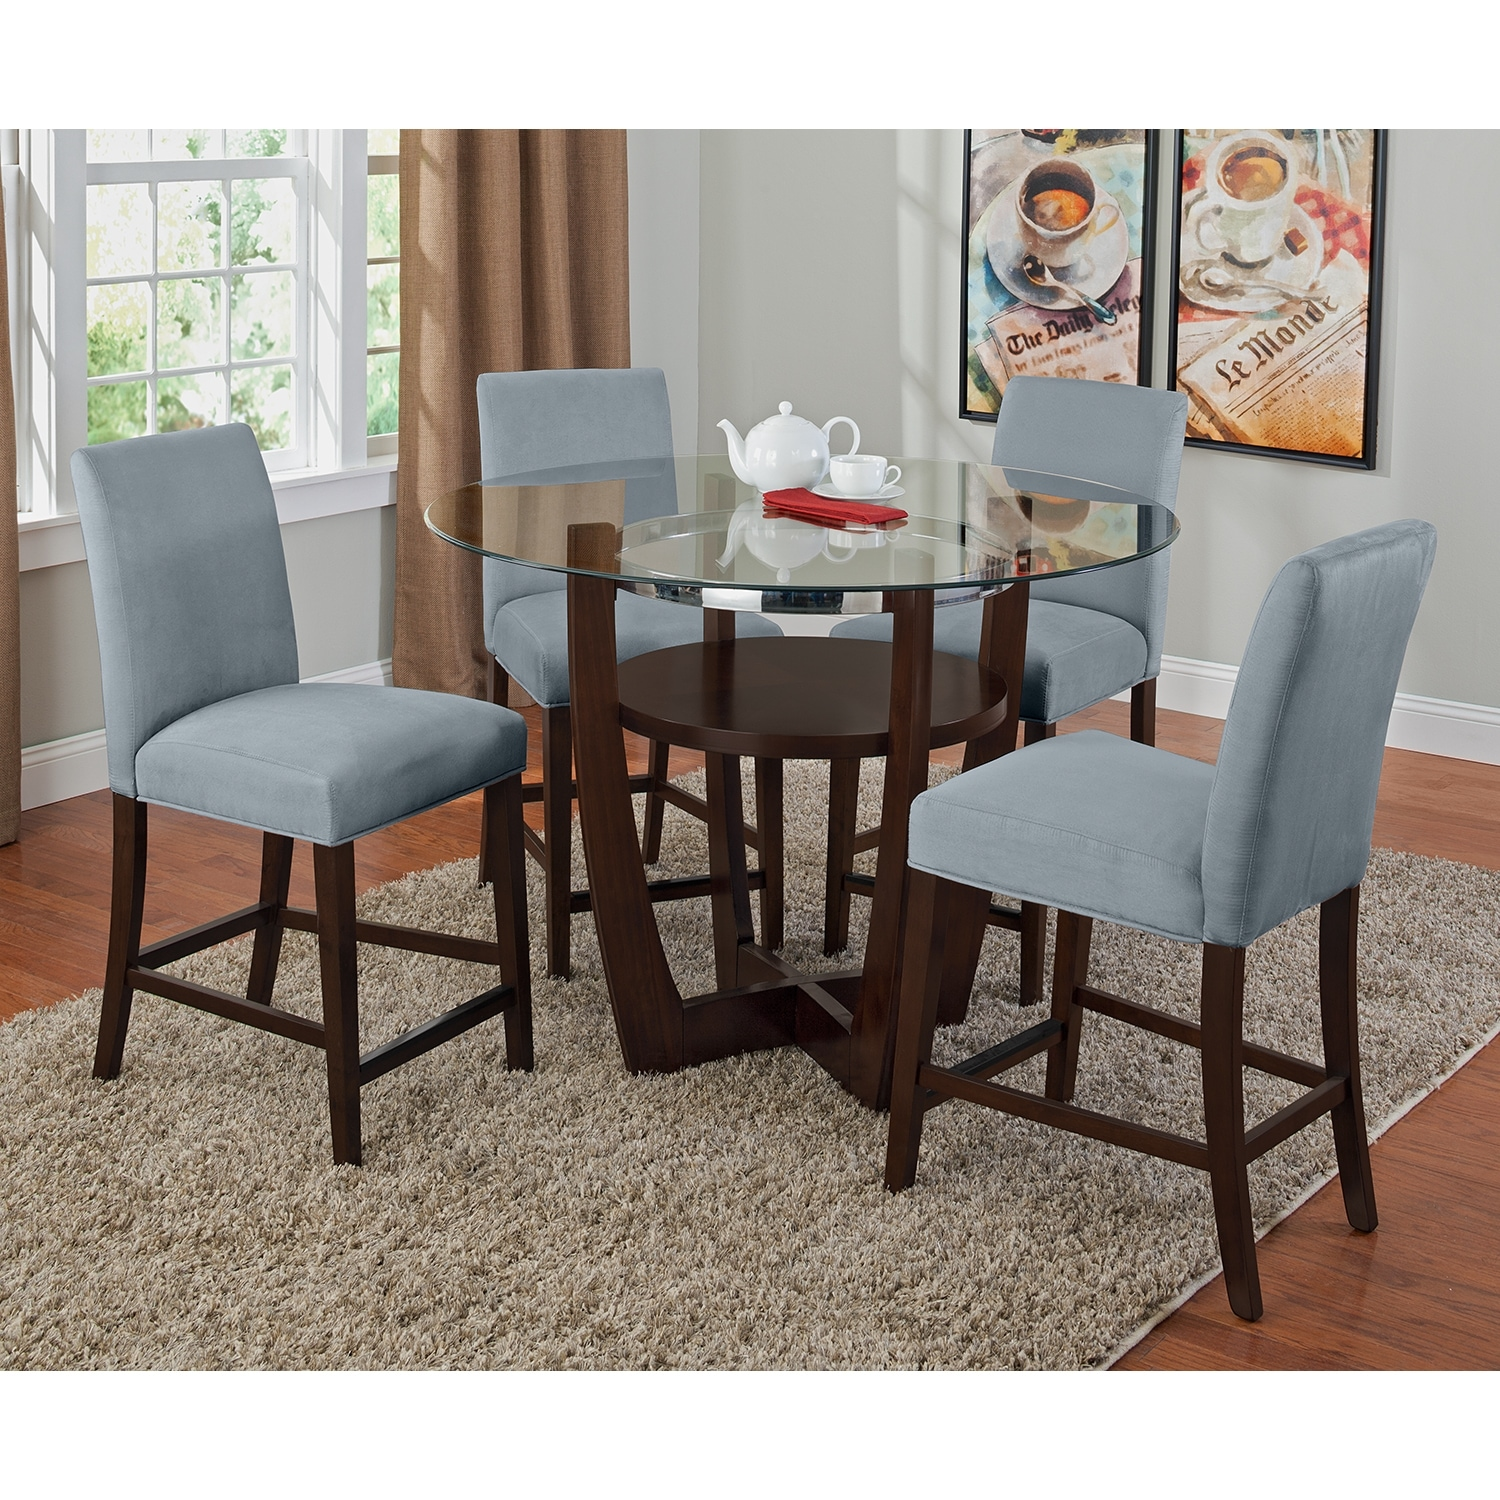 Value City Dining Room Tables Height Dining Room 276250 Height Dining Room Dining Room Counter